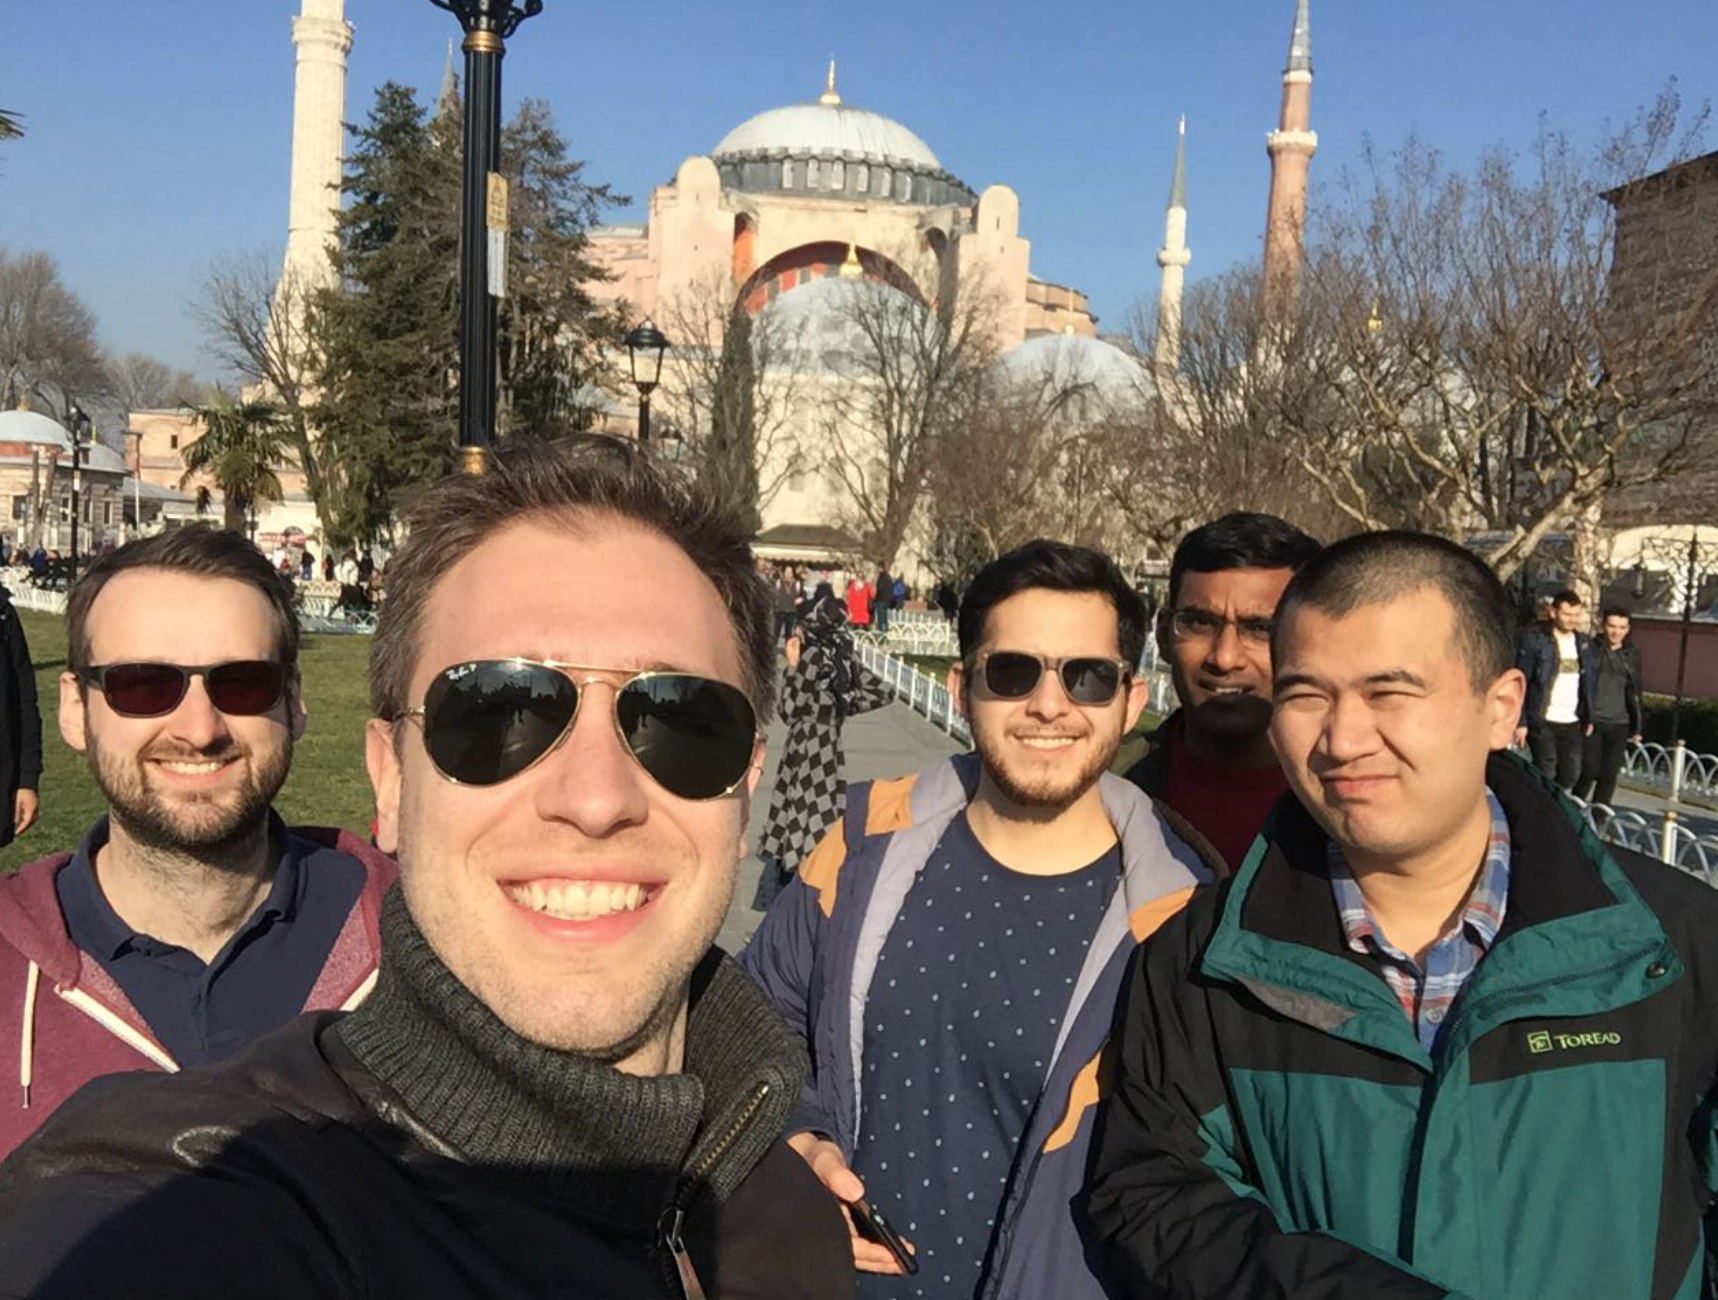 OMEGA Lab in Turkey - 4/2/18OMEGA team members explore and enjoy some food before attending the Symposium on Recent Advances on Organic/Hybrid Electronics. Team outings are a great way to facilitate bonding among group members!